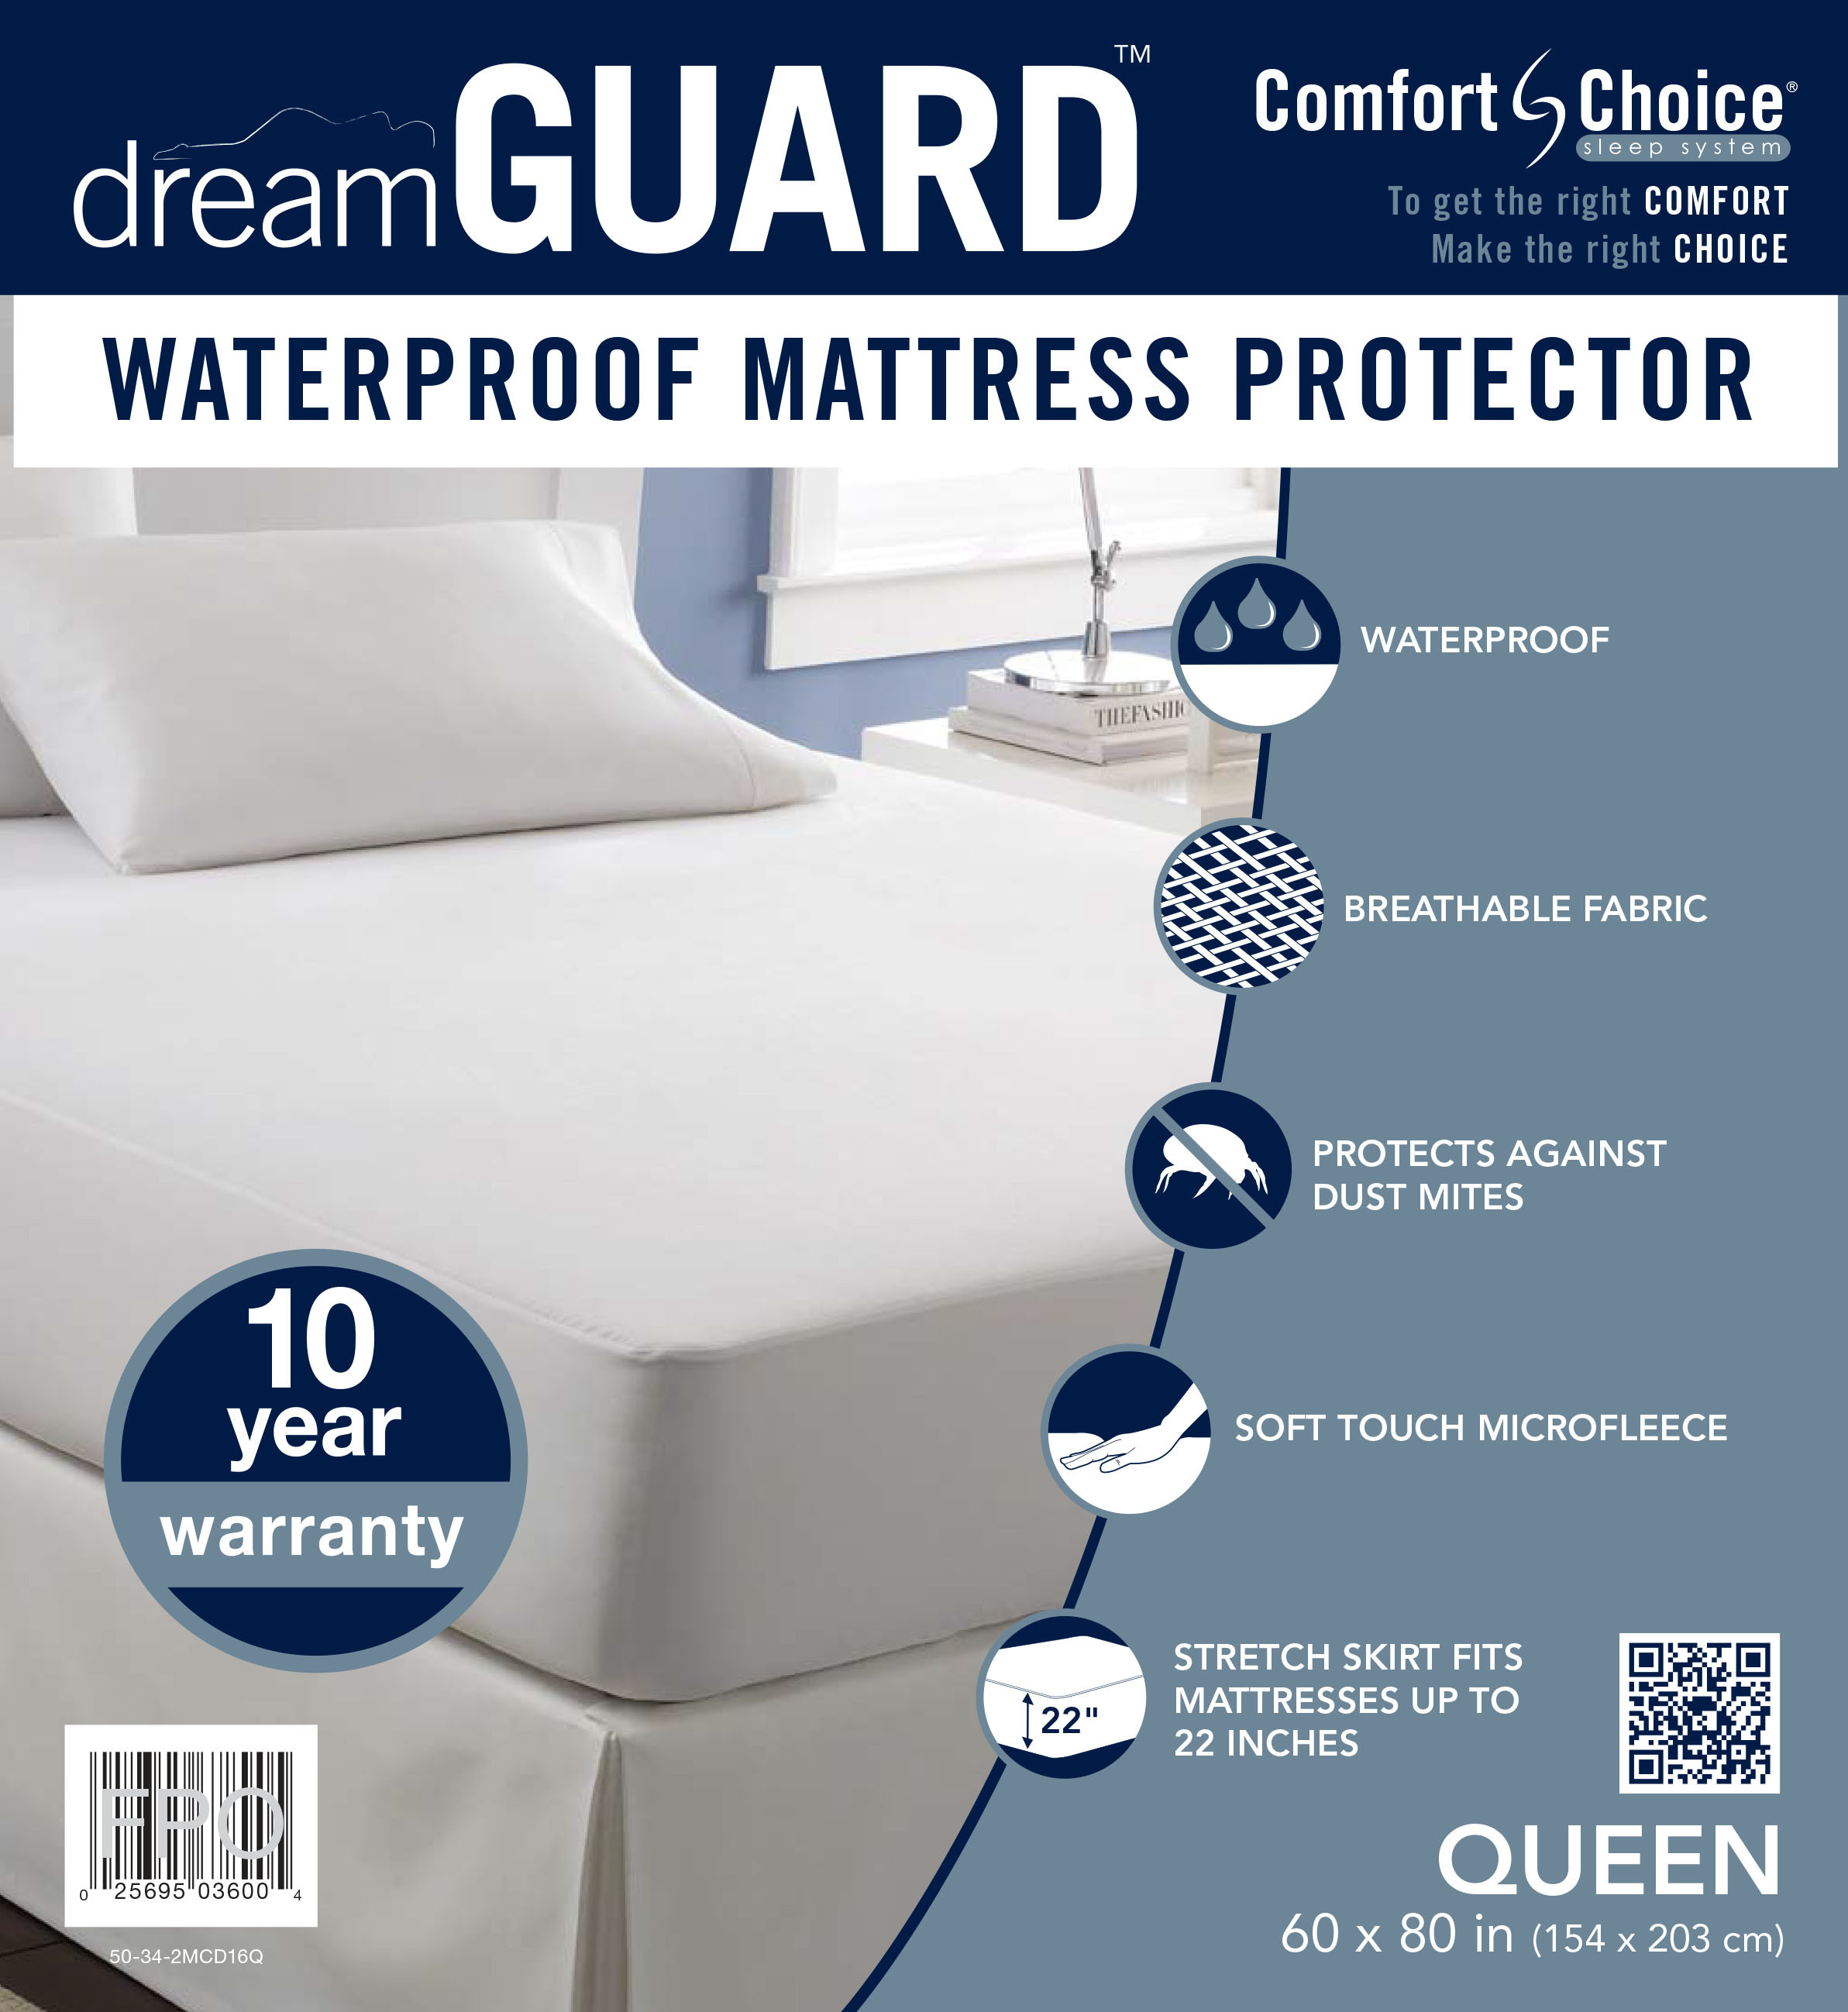 dreamGUARD Queen Size Mattress Protector